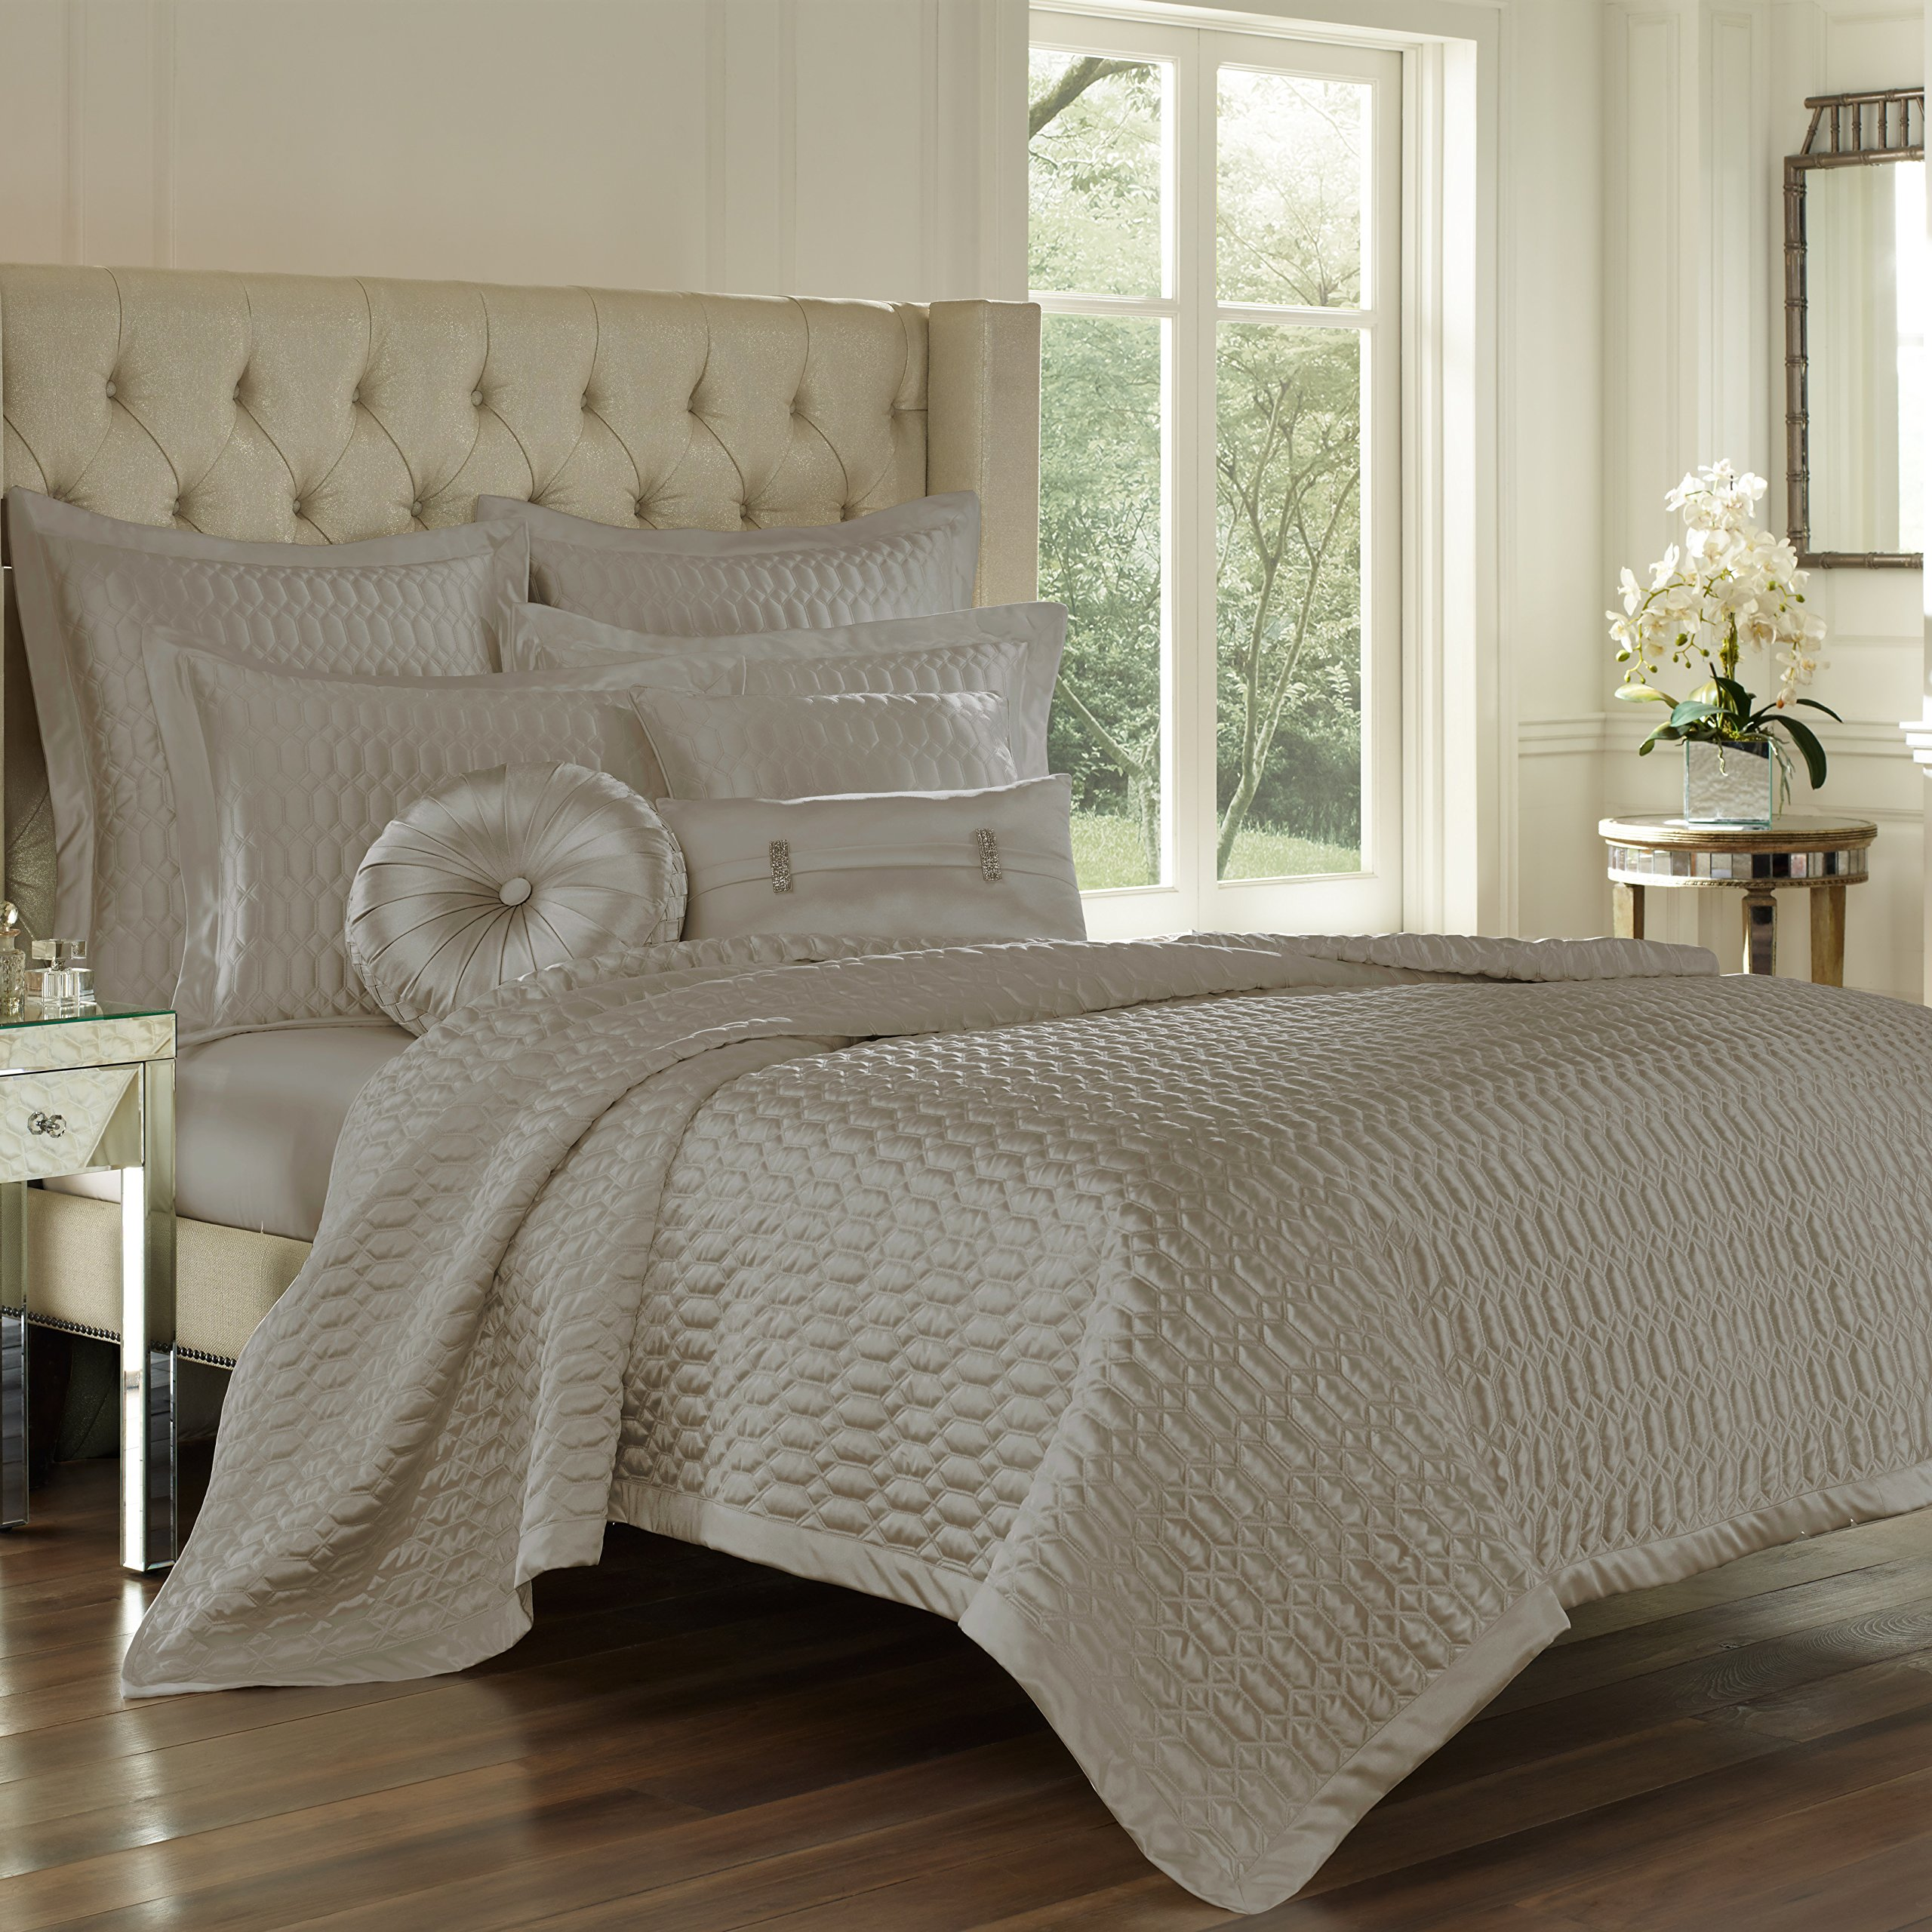 Five Queens Court Saranda Satin Geometric Quilted Coverlet King, Silver